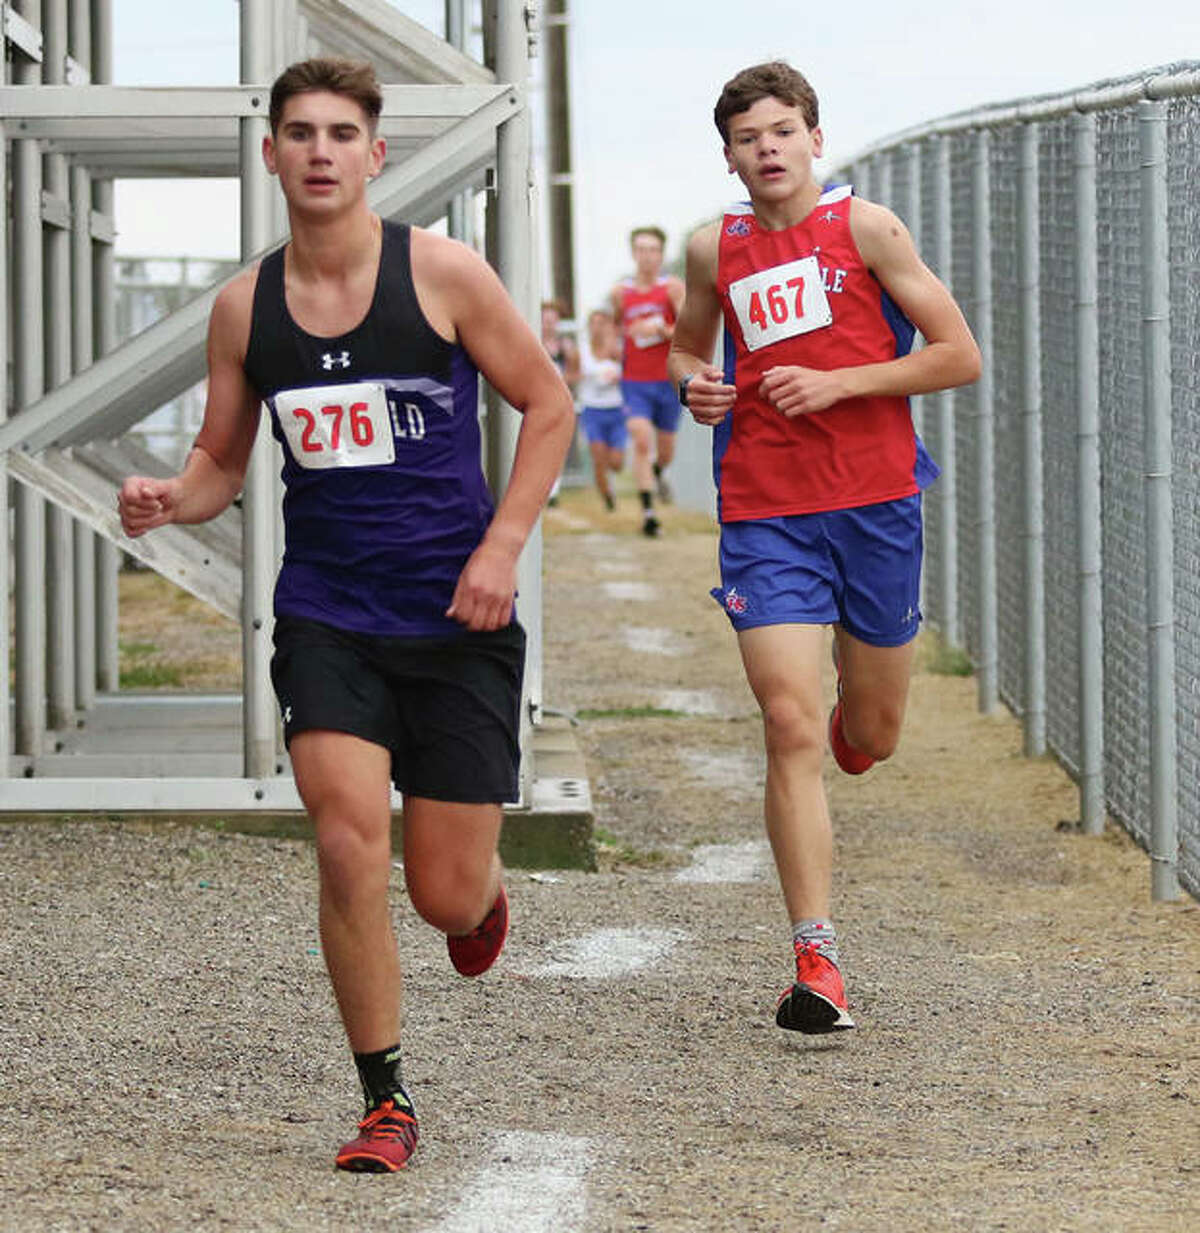 Litchfield's Camden Quarton (left) and Carlinville's Will Meyer run the narrow path behind the bleachers at Southwestern's football field Monday during the SCC Meet in Piasa. Quarton and Meyer held those positions in the final mile to finish second and third, respectively.